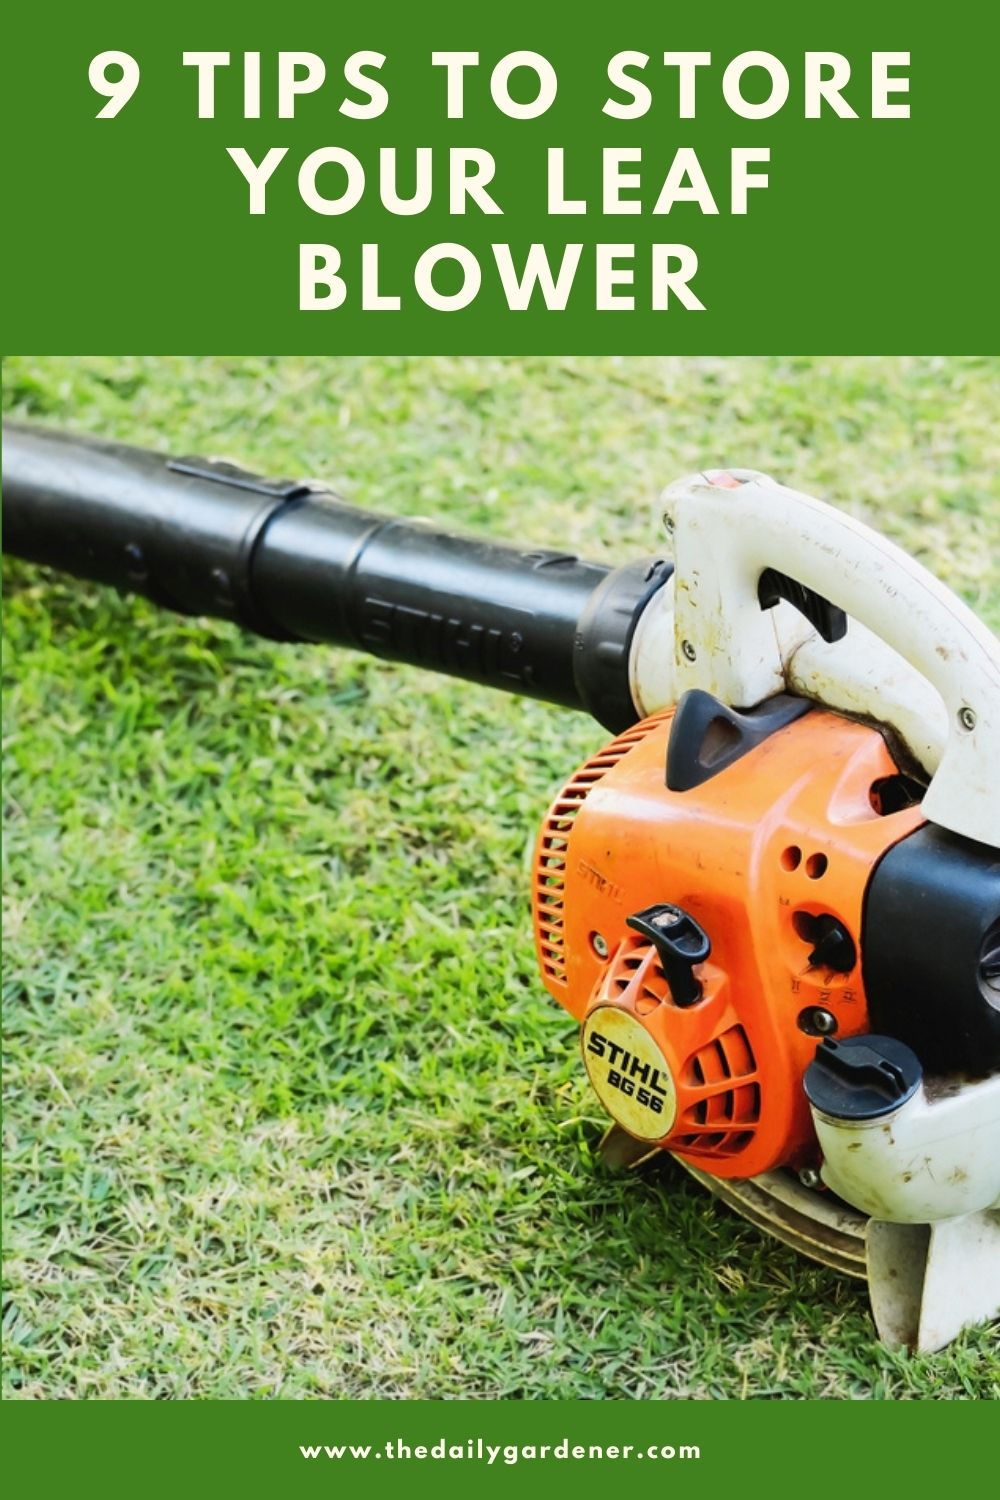 9 Tips to Store Your Leaf Blower 1